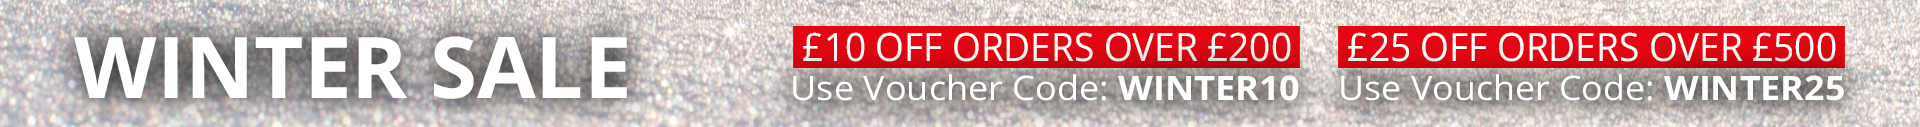 £10 OFF ORDERS OVER £200 Use Voucher Code WINTER10